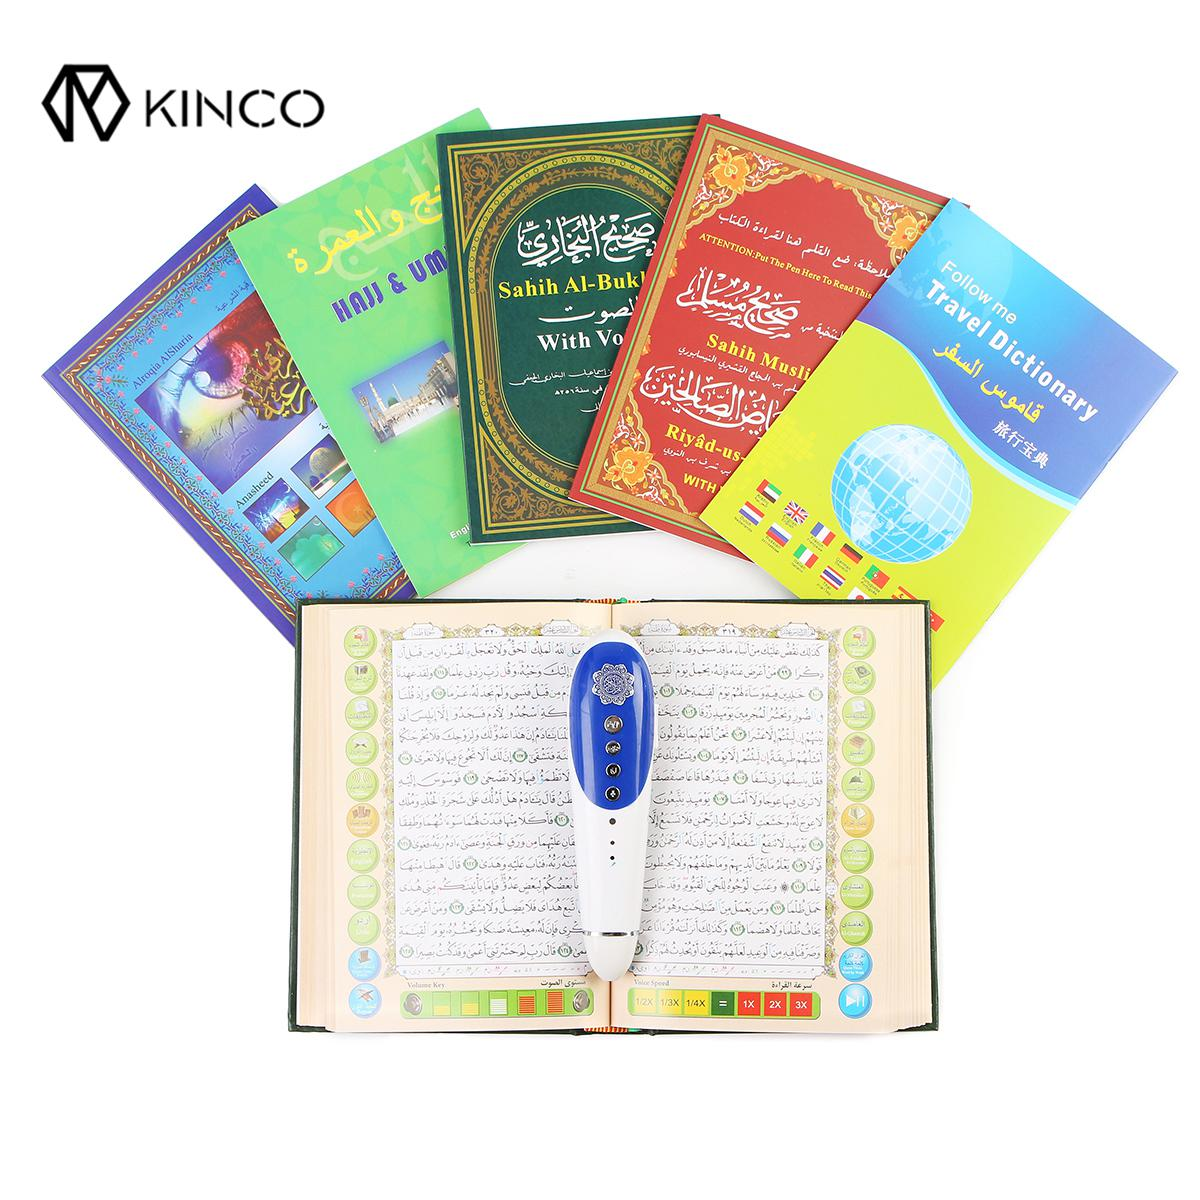 NEW 8GB Digital Quran Pen Reader 23 Languages Digital Quran Reader Pen Speaker Recite FM MP3 TF With 6 BooksNEW 8GB Digital Quran Pen Reader 23 Languages Digital Quran Reader Pen Speaker Recite FM MP3 TF With 6 Books